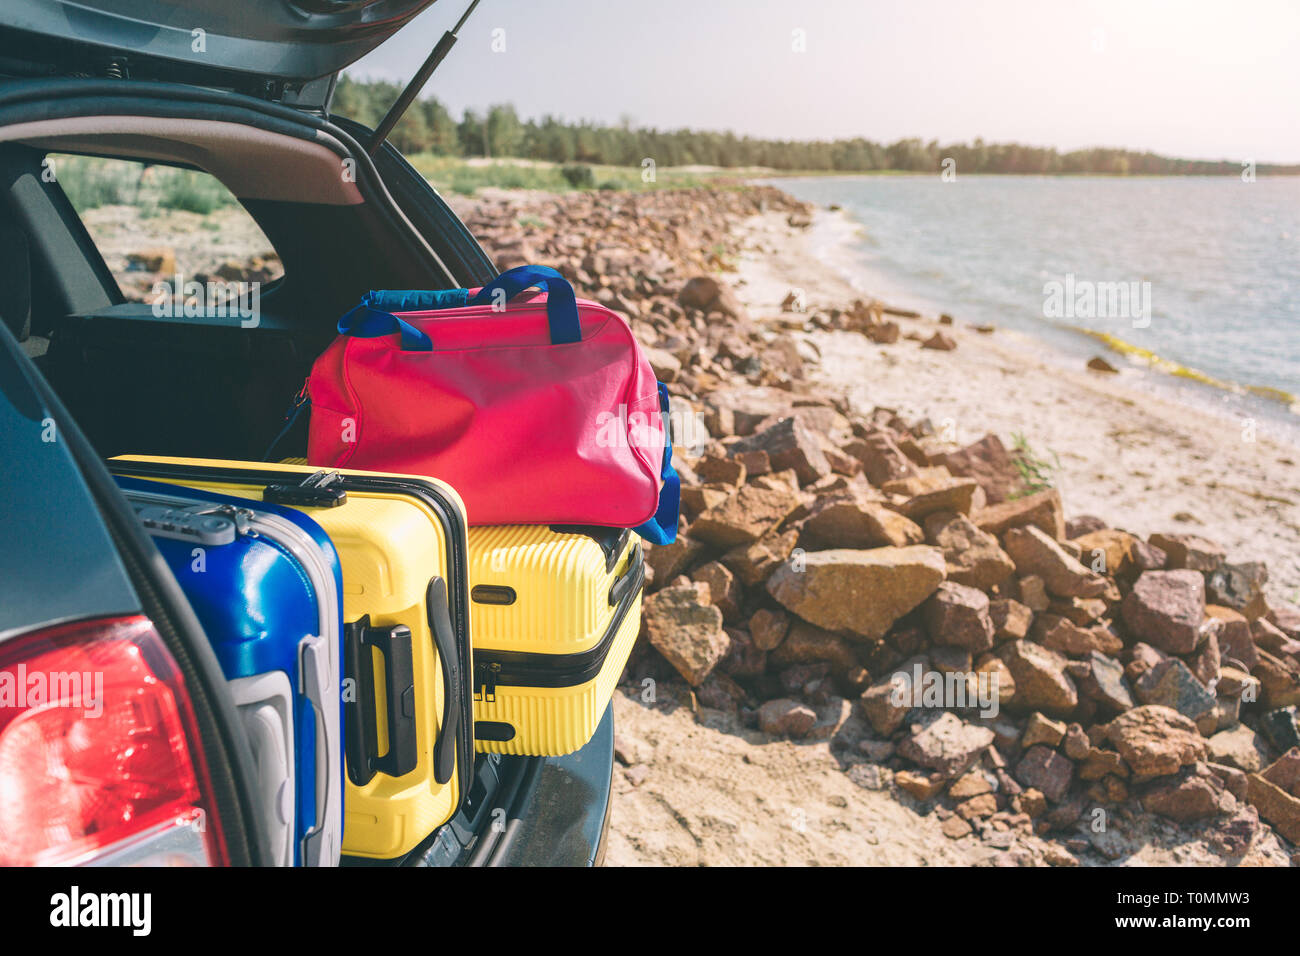 Suitcases and bags in trunk of car ready to depart for holidays. Moving boxes and suitcases in trunk of car, outdoors. trip, travel, sea. car on the b - Stock Image